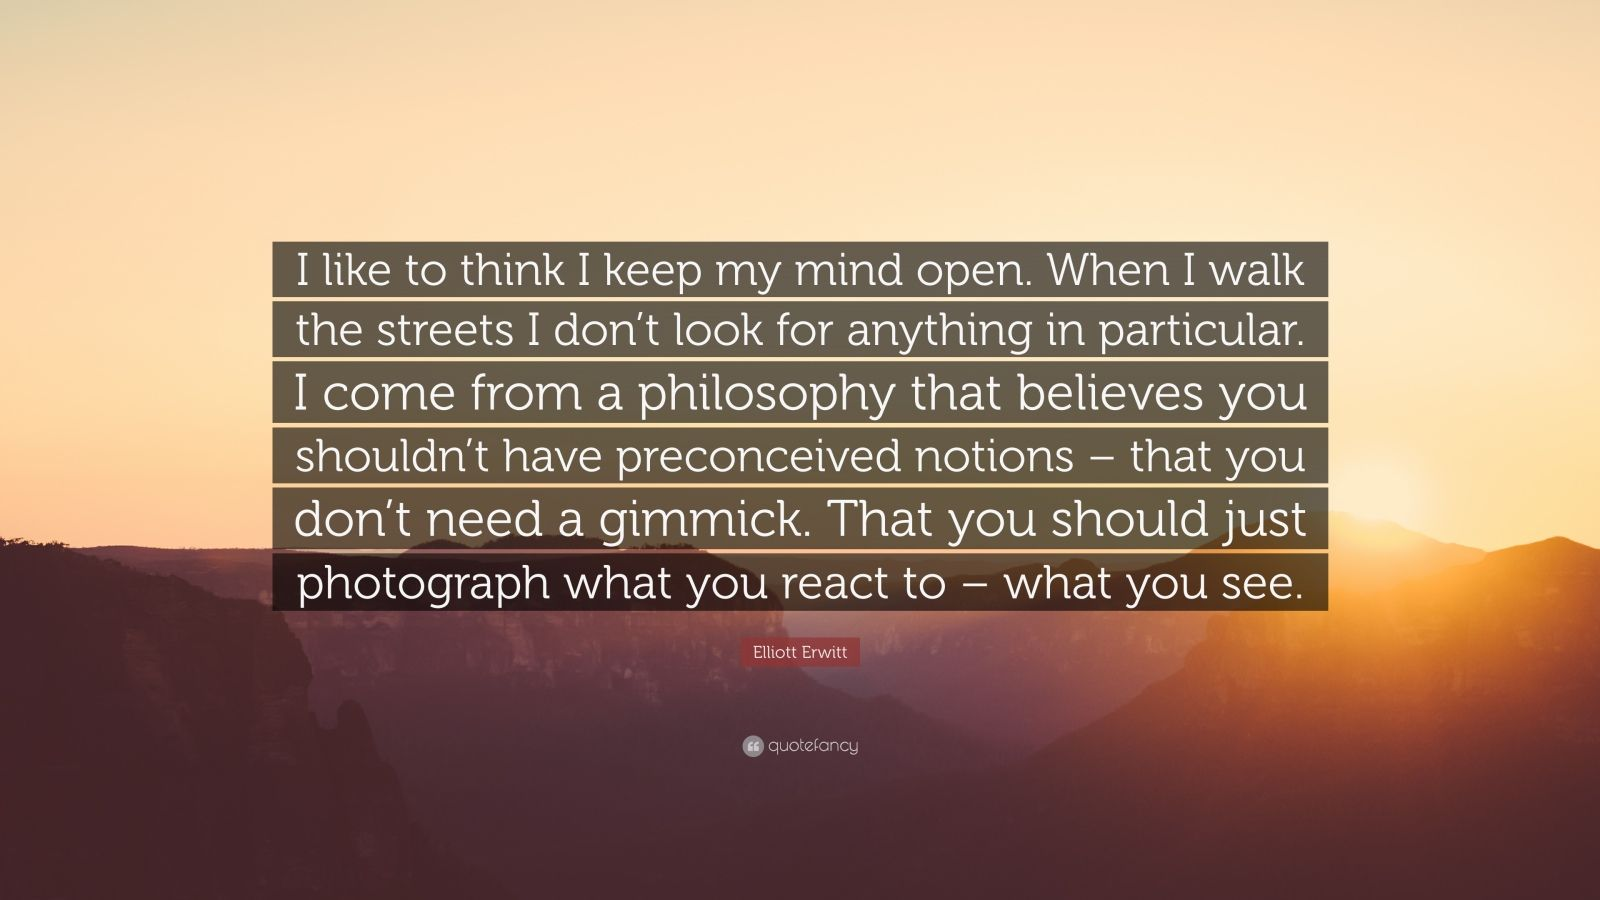 """Elliott Erwitt Quote: """"I like to think I keep my mind open. When I walk the streets I don't look for anything in particular. I come from a philosophy that believes you shouldn't have preconceived notions – that you don't need a gimmick. That you should just photograph what you react to – what you see."""""""